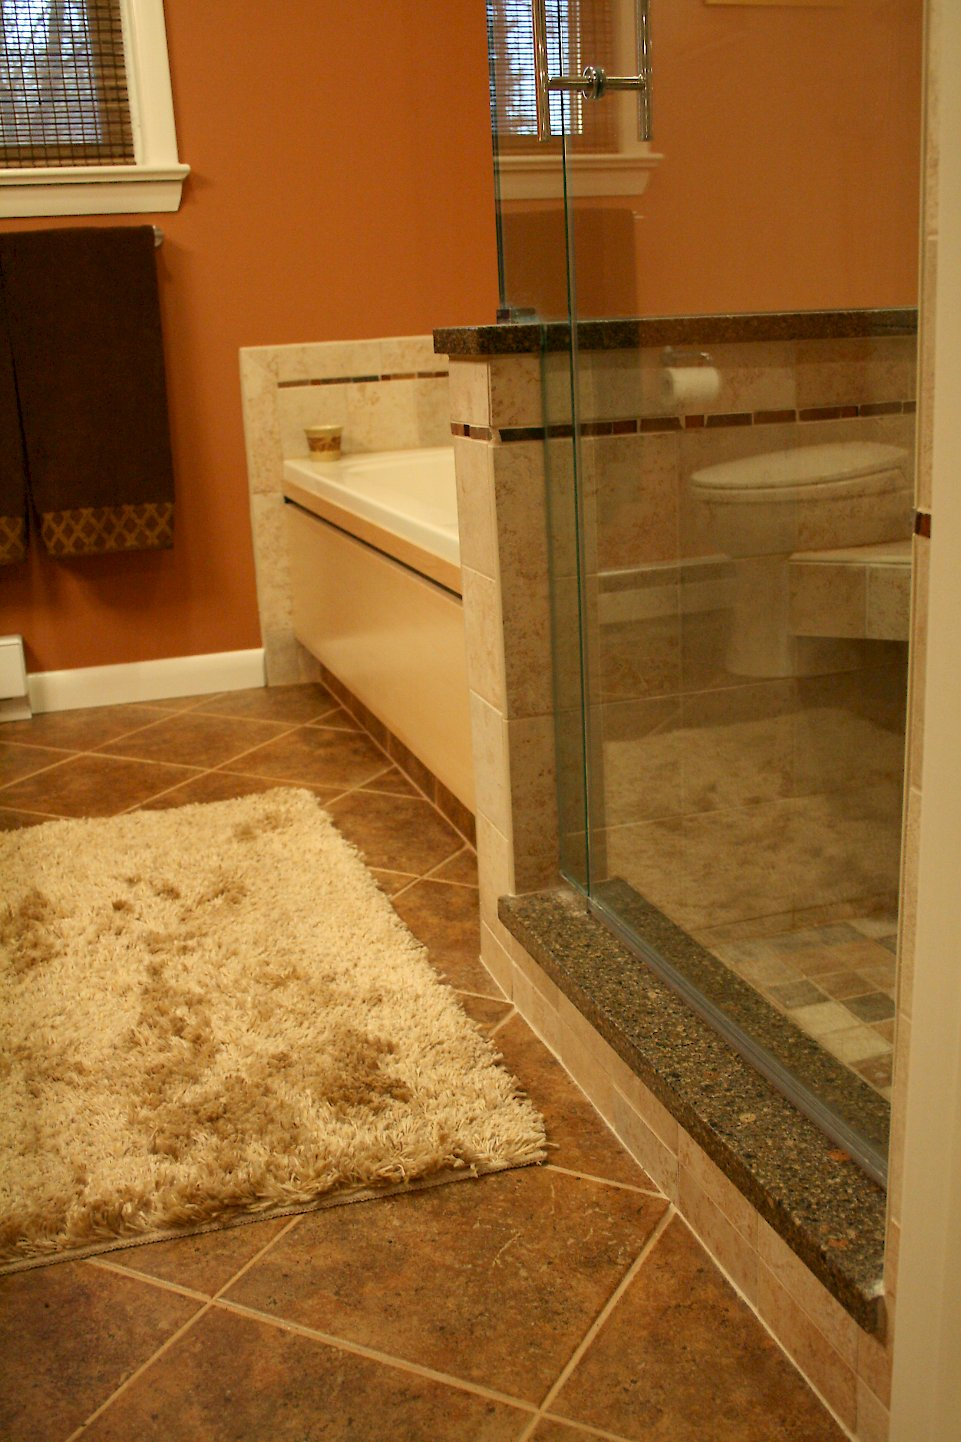 Cambria Ashford threshold on the shower curb.